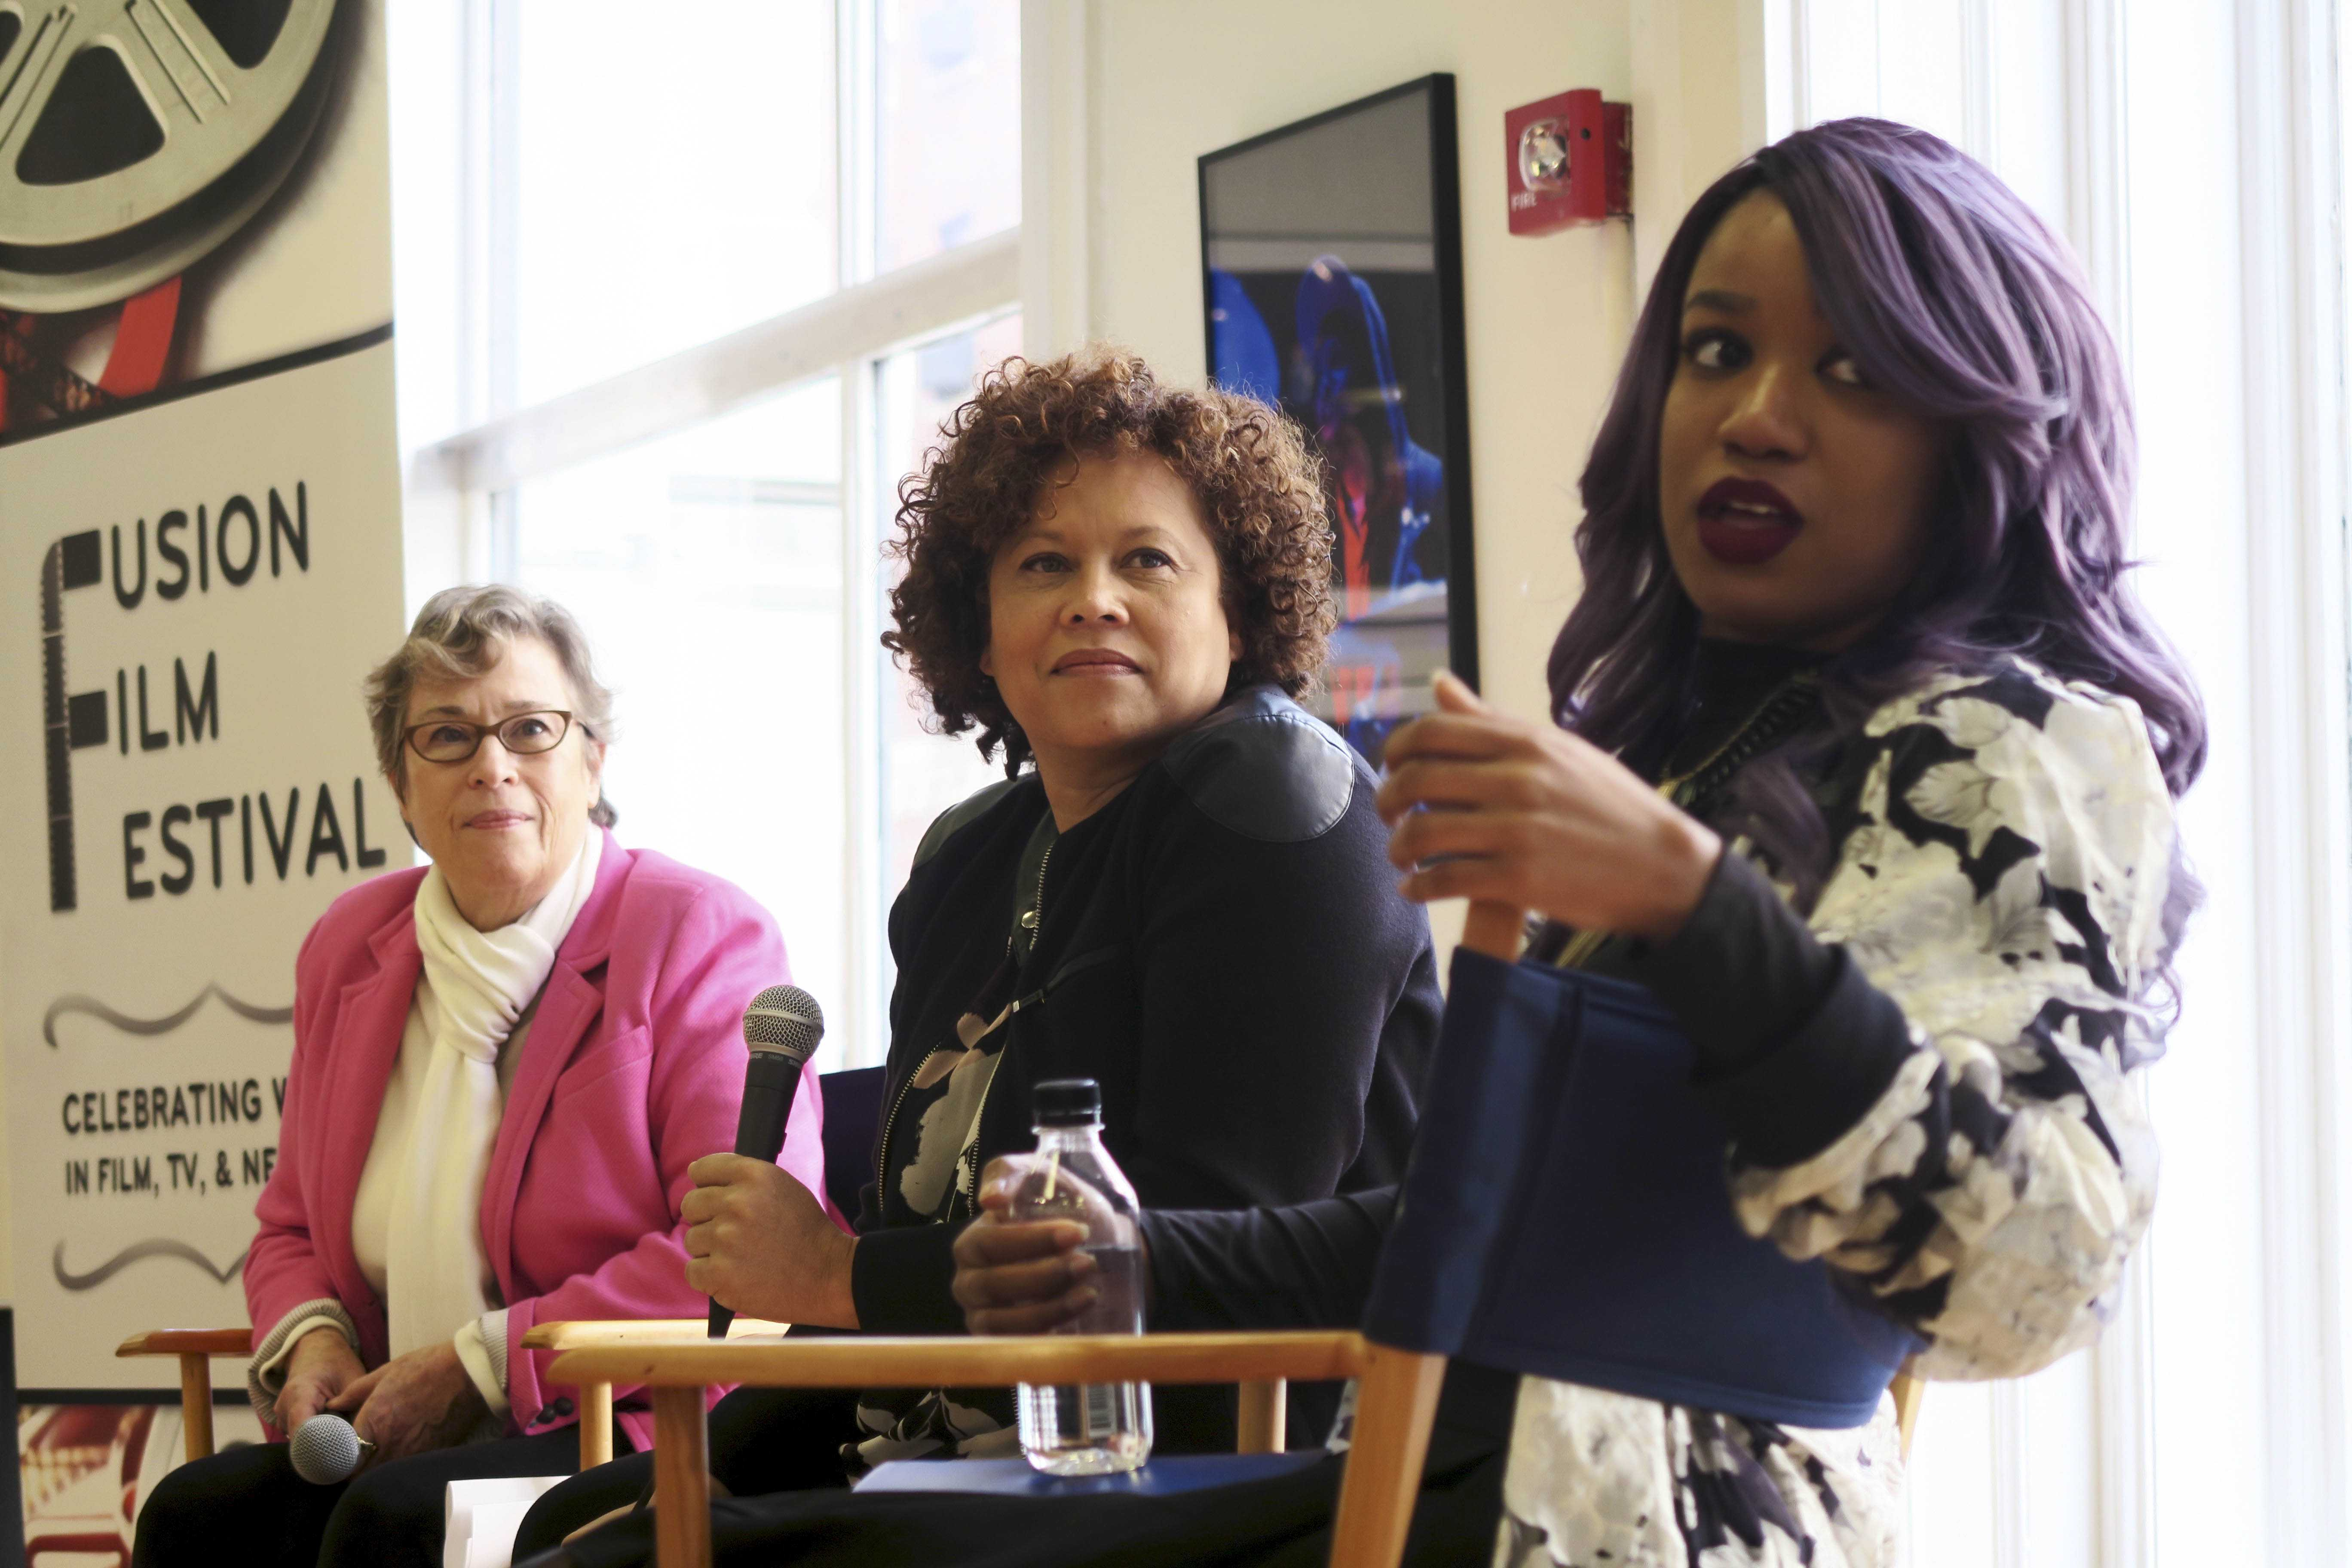 From left to right, Susan Sandler, Kelly Edwards and Vanessa Benton discussed the issues of diversity in the entertainment industry at the Brunch with an Icon event on Saturday.  The brunch was one of the many events hosted by the Fusion Film Festival.